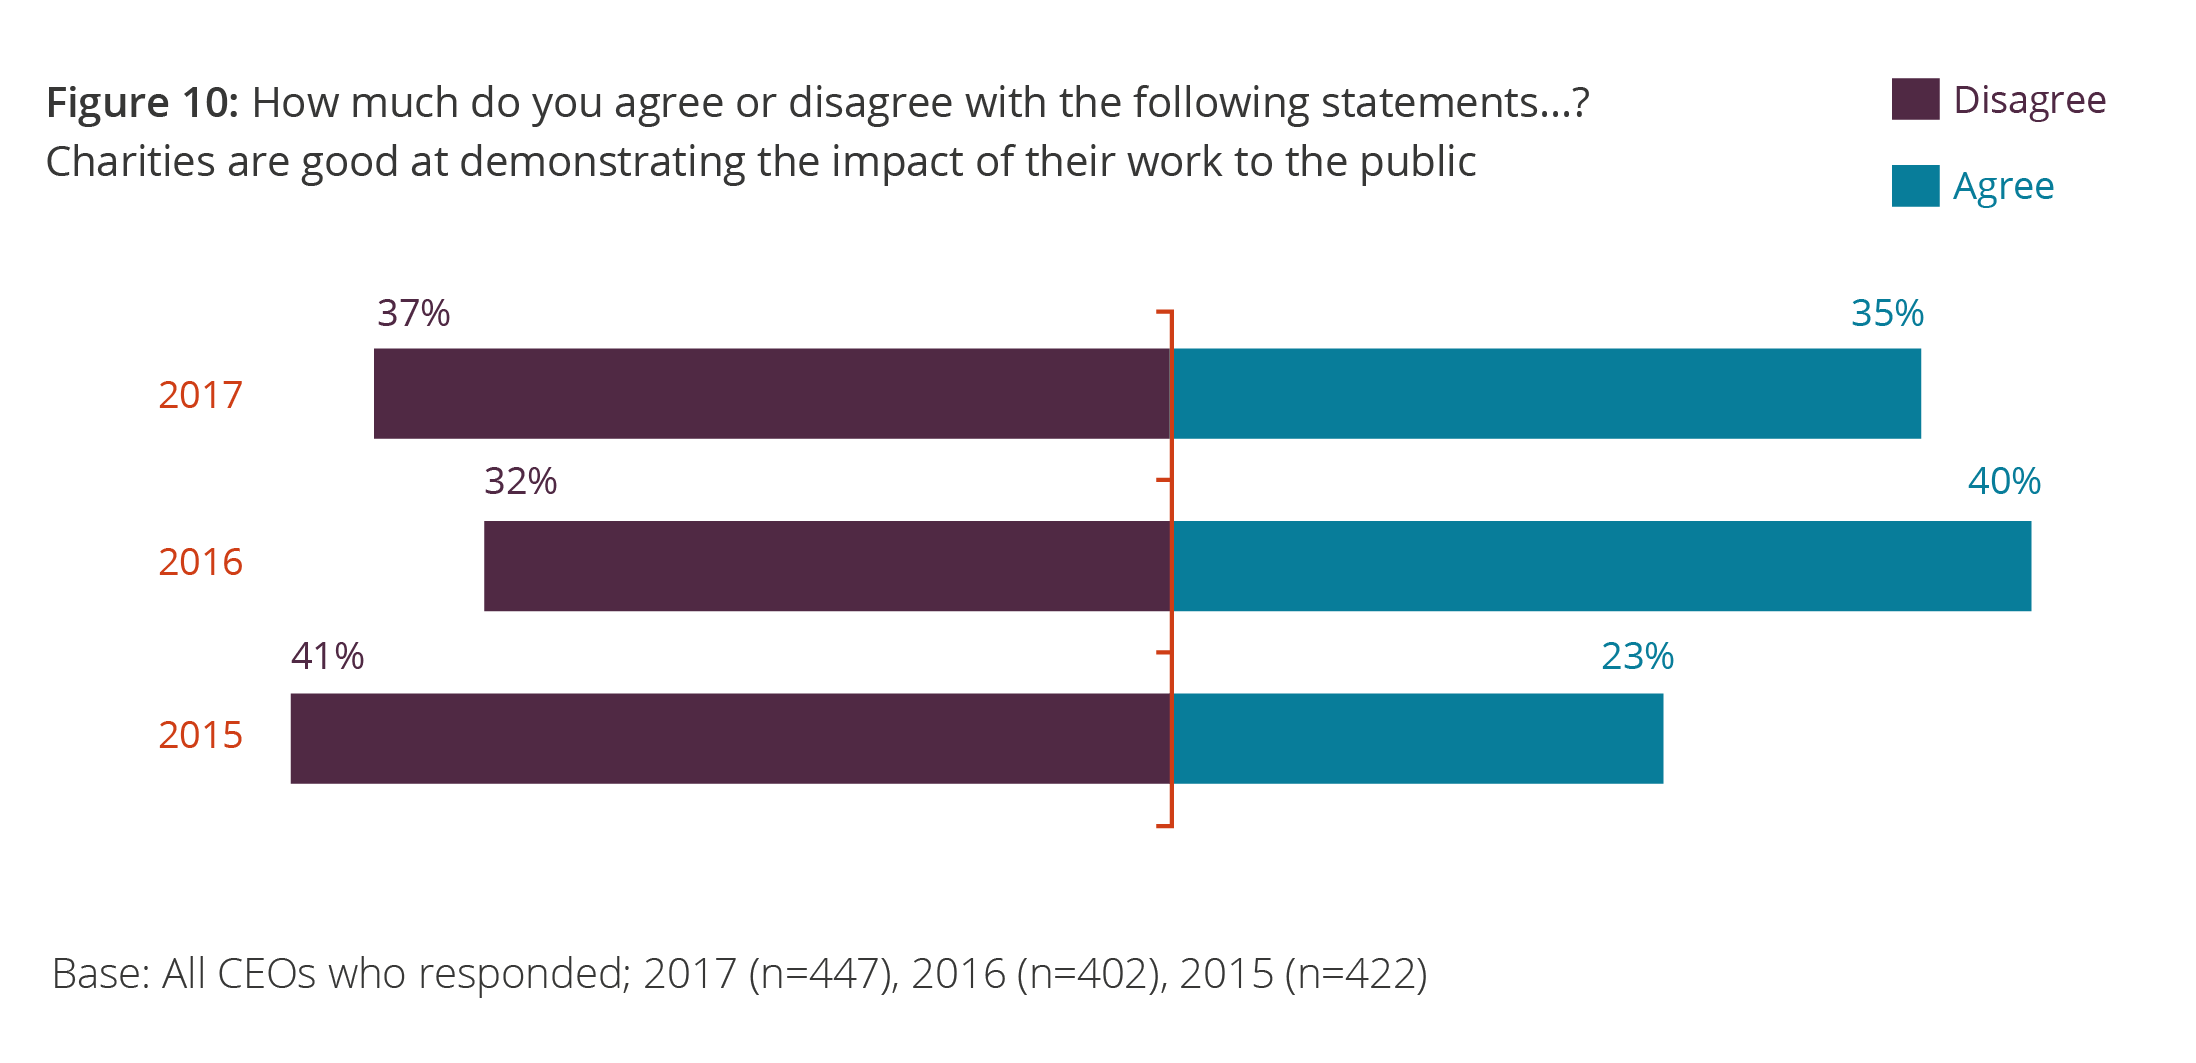 Figure 10: How much do you agree or disagree with the following statements…? Charities are good at demonstrating the impact of their work to the public